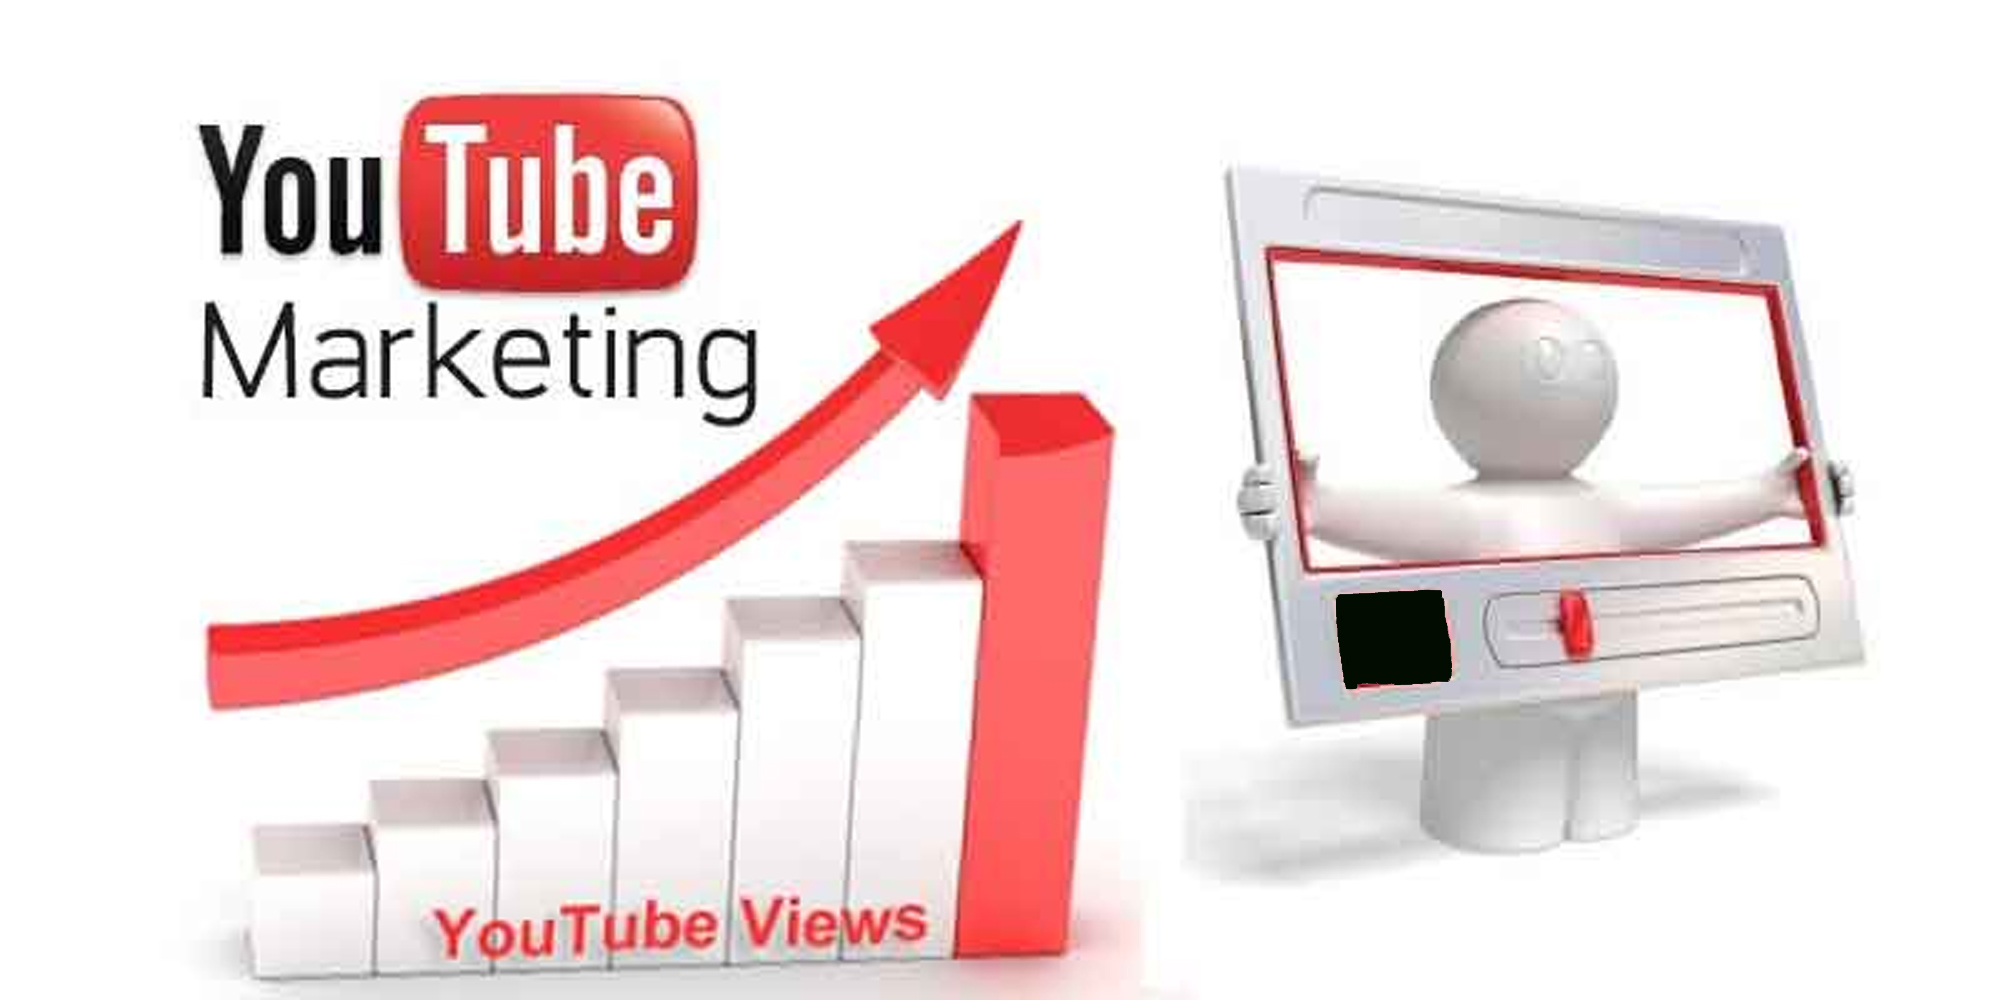 Organic Hq, YouTube music promotion video and social media marketing